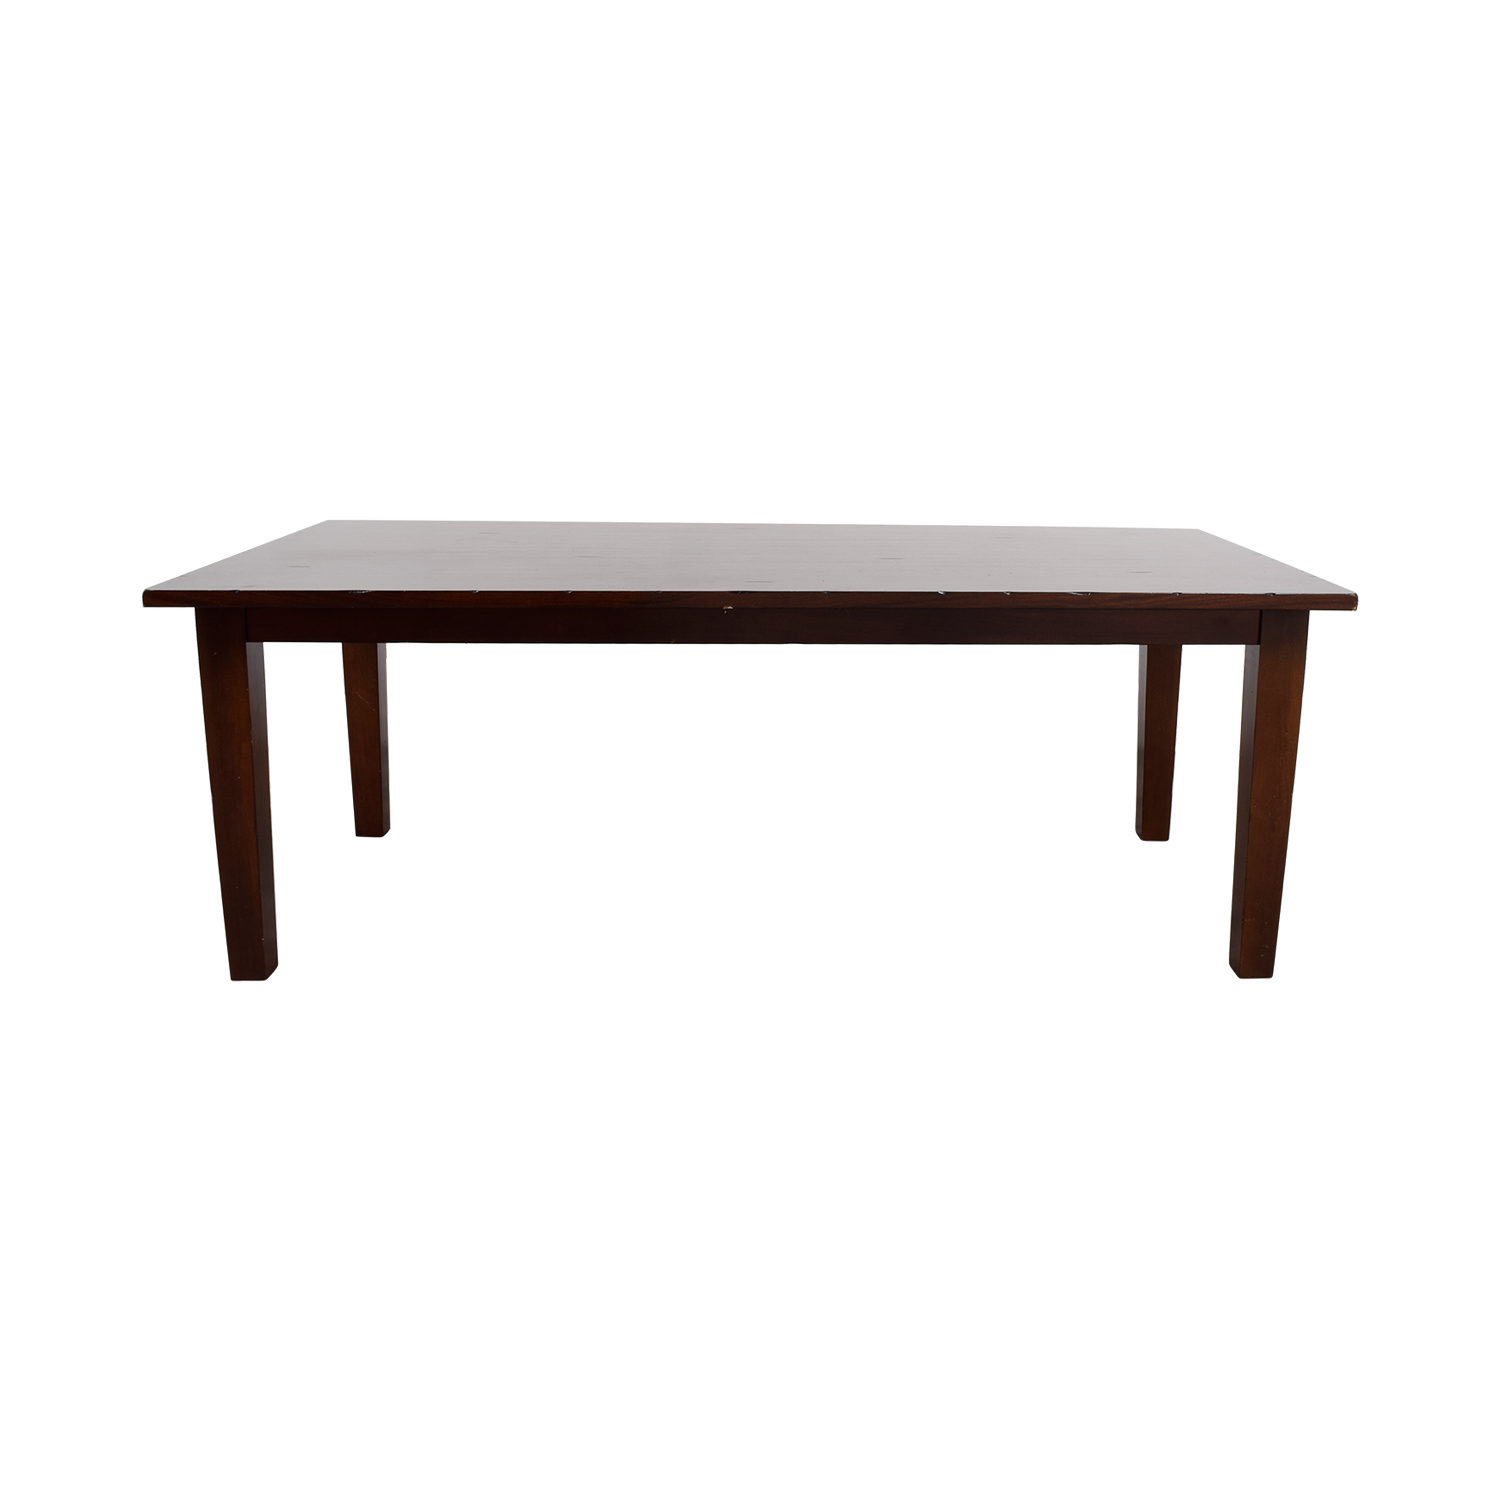 78% Off – Pier 1 Pier 1 Imports Mahogany Farmhouse Table / Tables Pertaining To Latest Mahogany Shayne Drop Leaf Kitchen Tables (Photo 23 of 25)